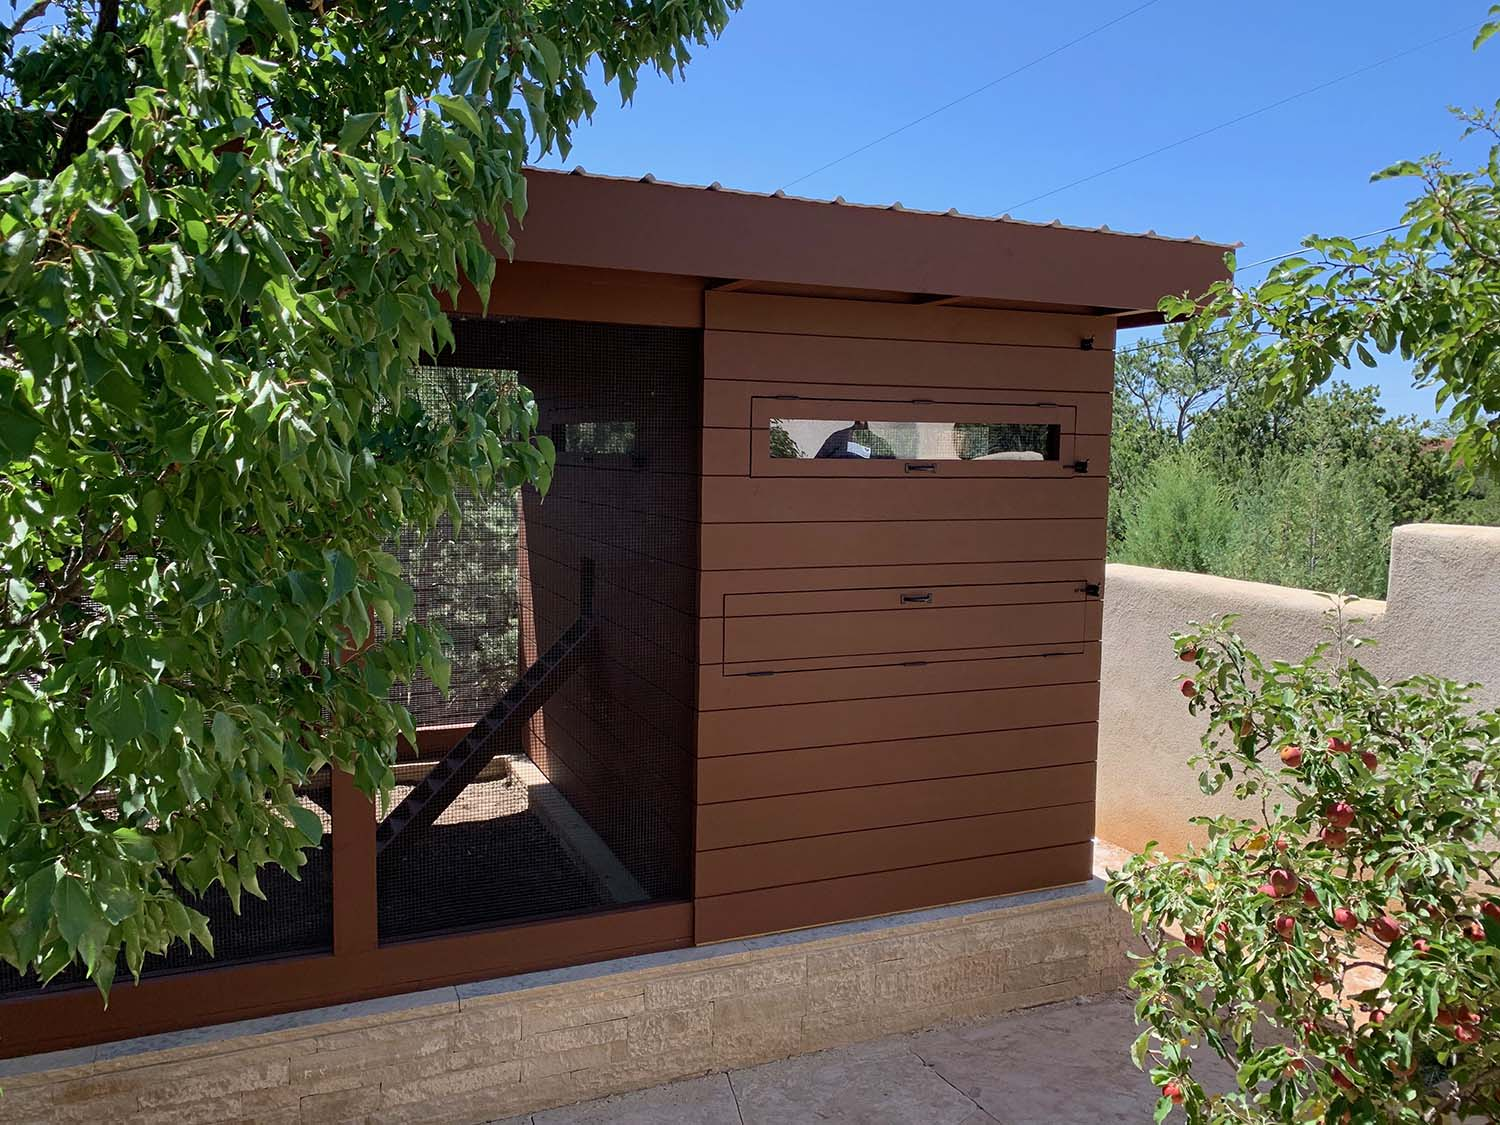 Henhouse exterior of a custom modern chicken coop with shiplap siding in Santa Fe, NM